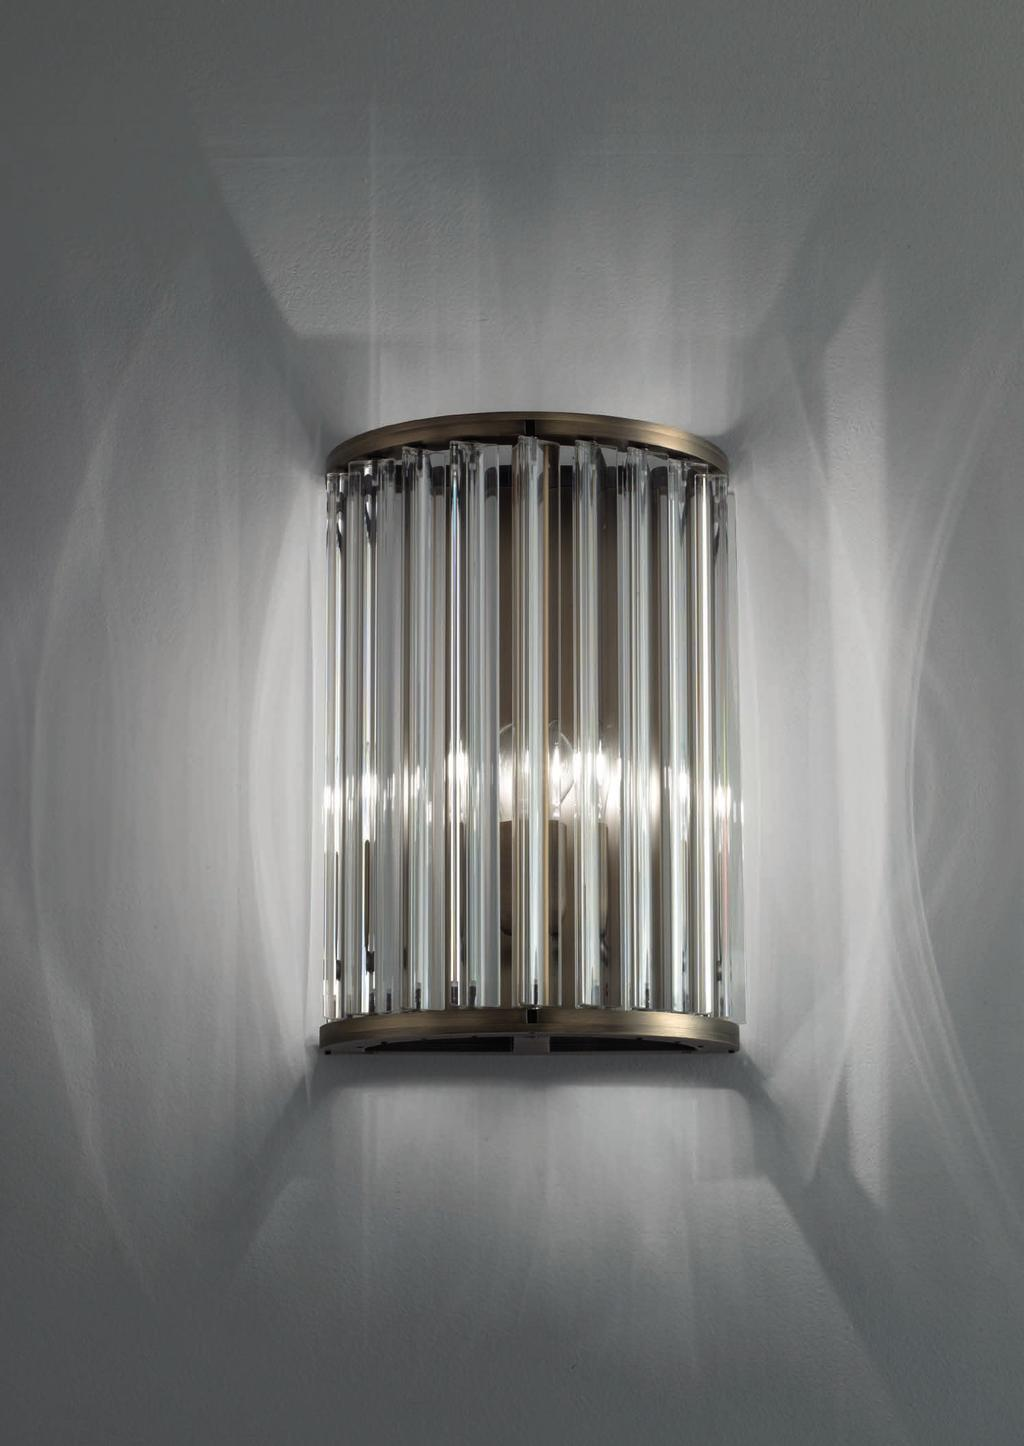 CROWN WALL 14cm-5 5 35cm-13 7 26cm-10 Wall lamp with diffuse light. Dark bronze striped structure with crystal, amber or smoke trihedrons.